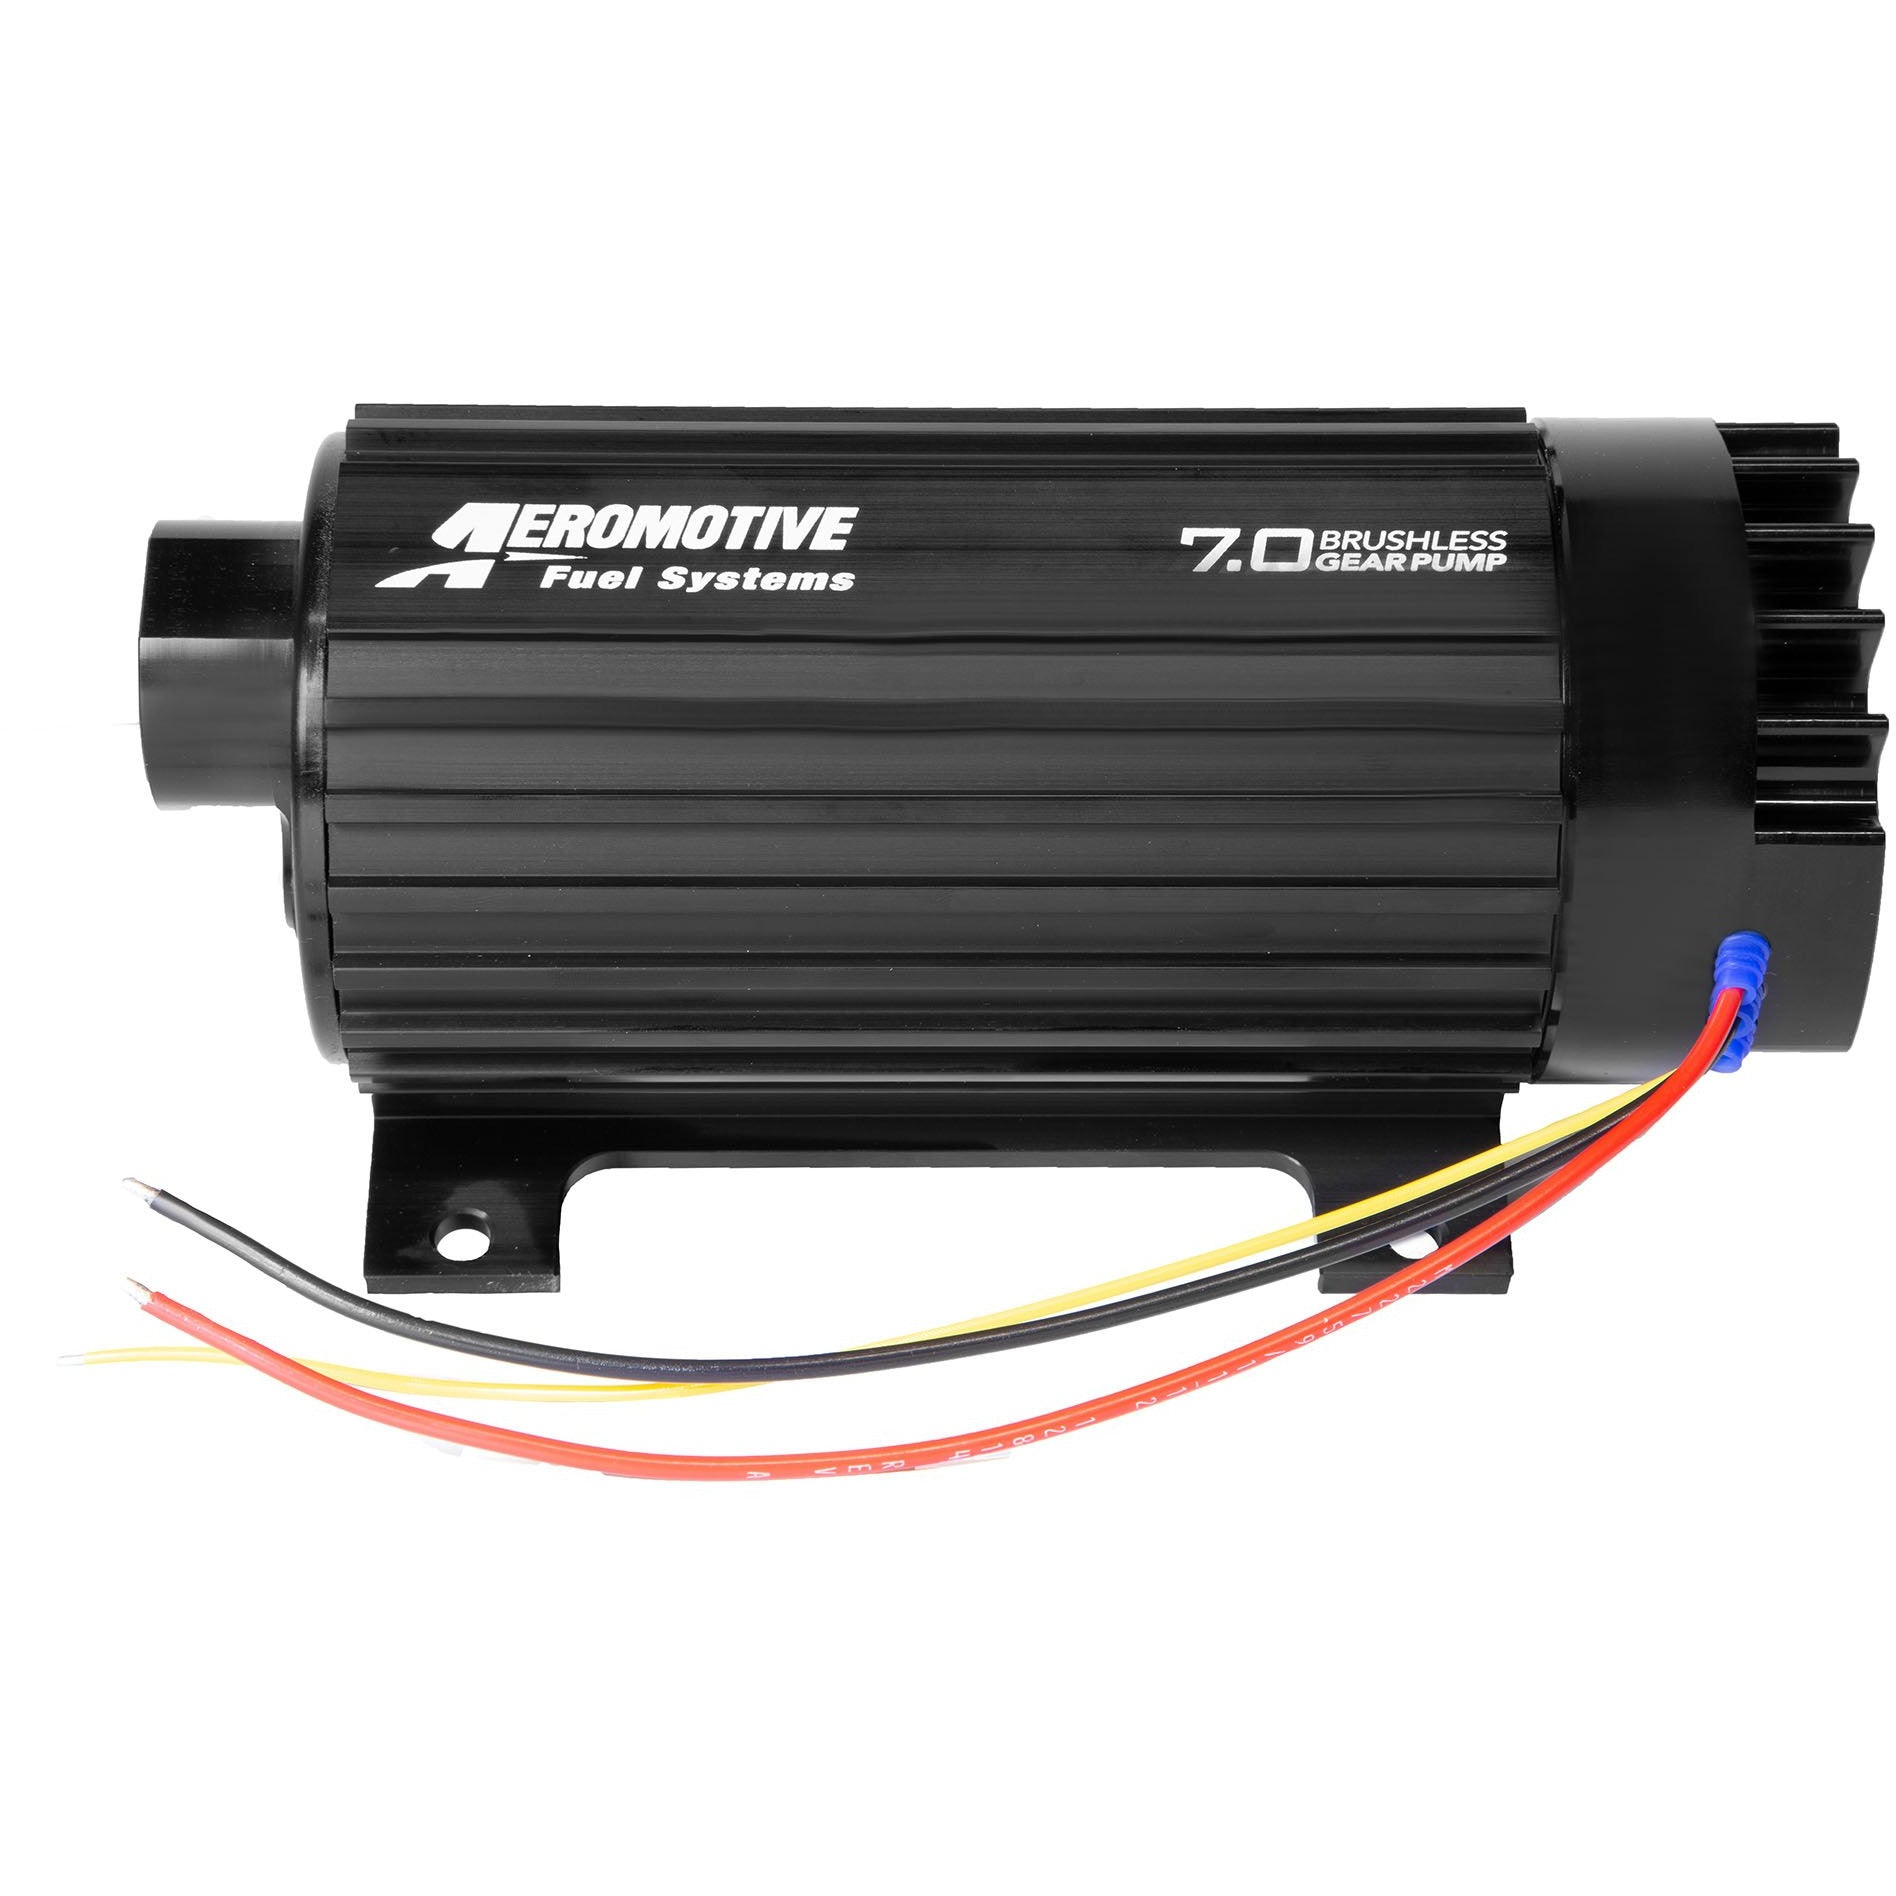 Aeromotive 7 GPM Brushless Variable Speed In-line Fuel Pump 11197-Aeromotive-Motion Raceworks